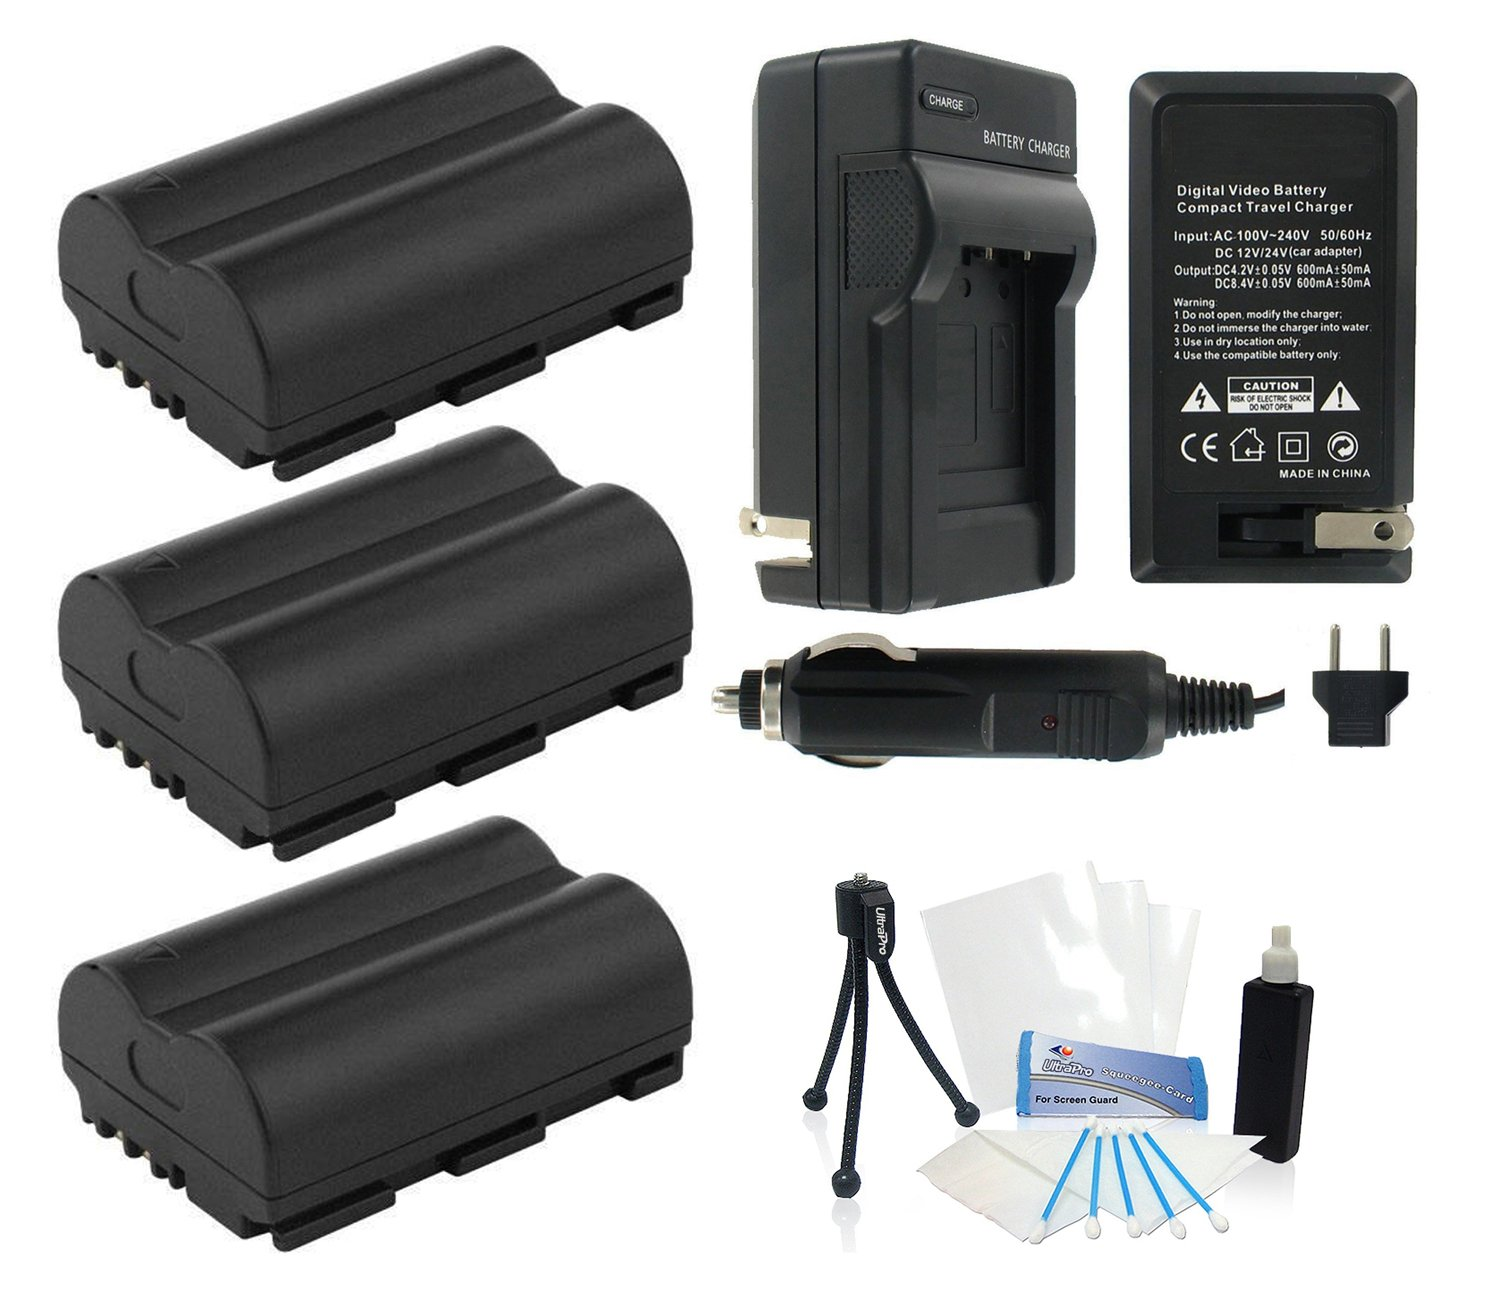 UltraPro 3-Pack of BP-512 High-Capacity Replacement Batteries with Rapid Travel Charger for Select Canon Digital Cameras - UltraPro Bundle Includes: Camera Cleaning Kit, Camera Screen Protector, Mini Travel Tripod